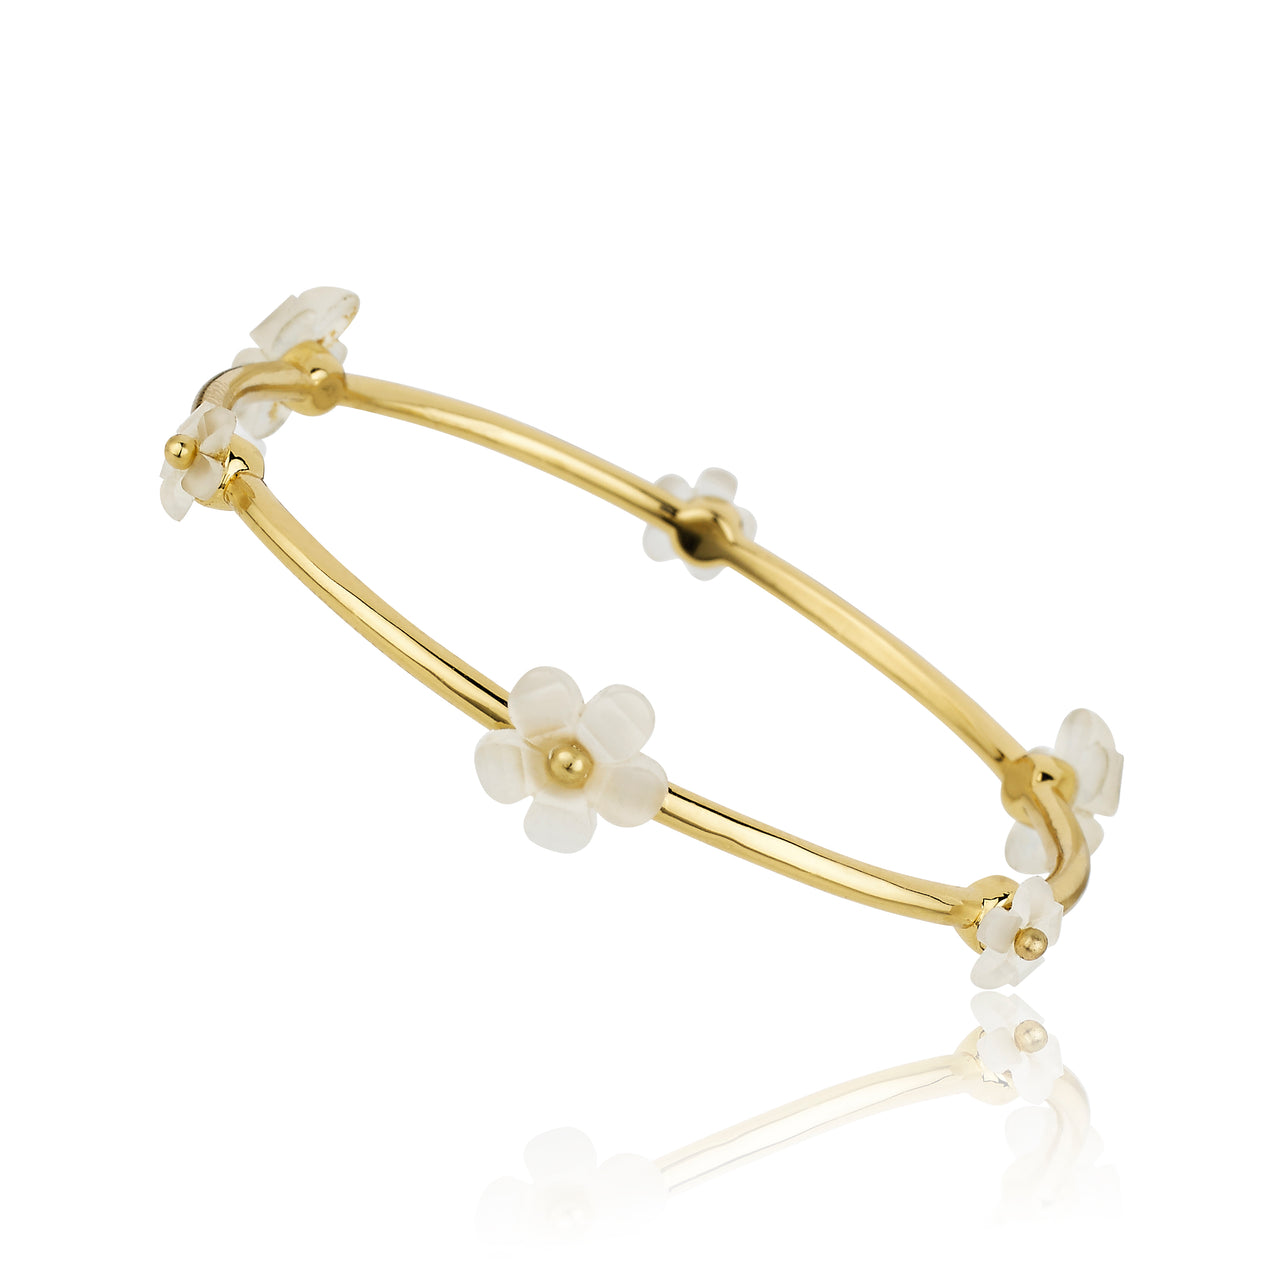 14K Gold Plated Frosted Alternating Flowers Bangle